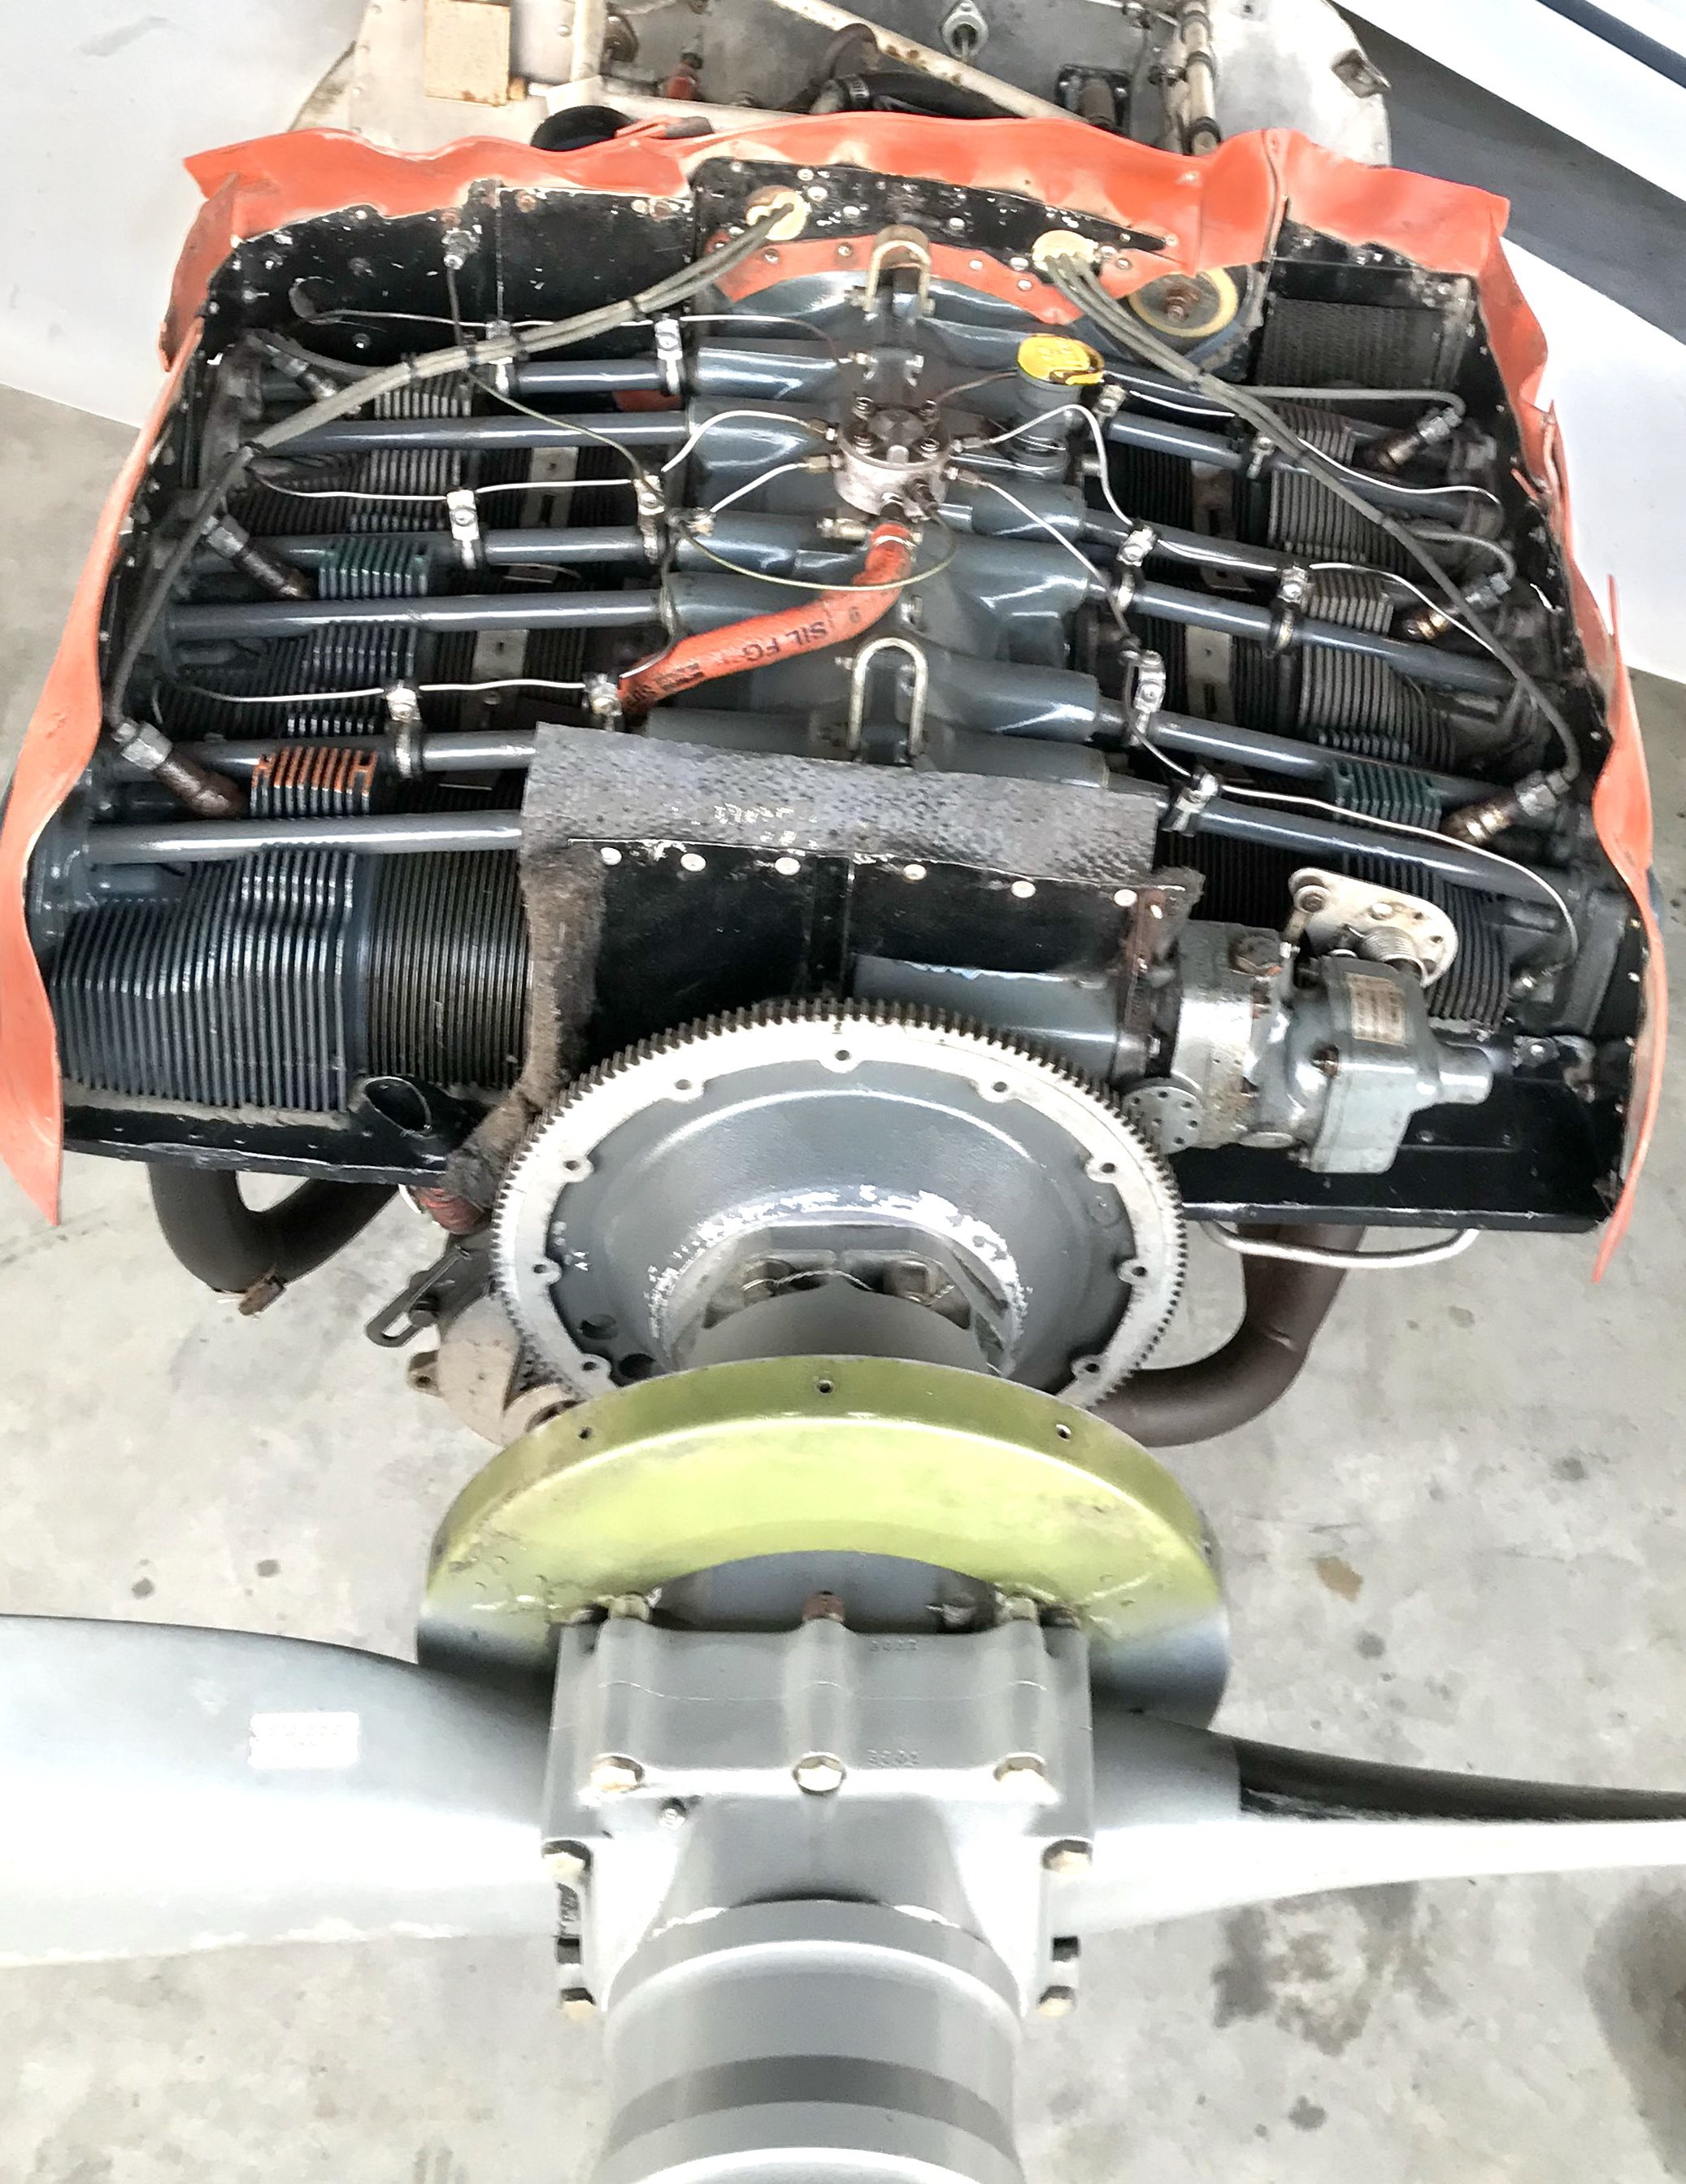 1970 Piper Aztec F PA23-250 Parting out